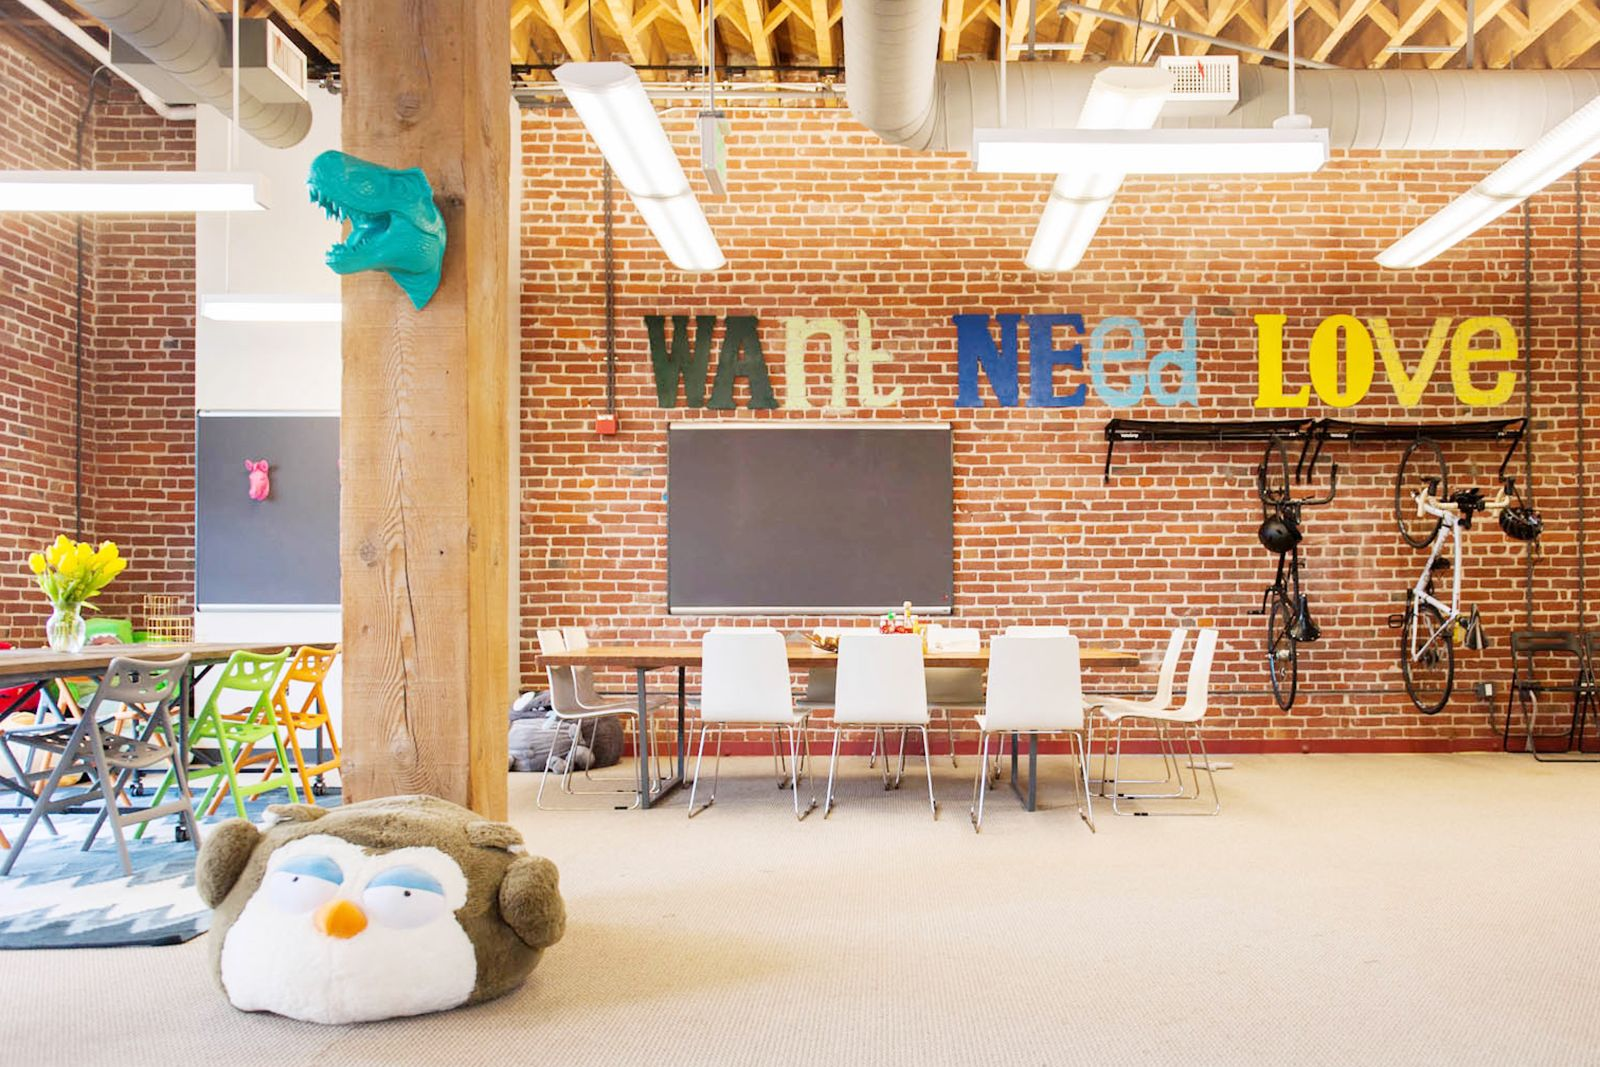 San Francisco Startups Techie Offices Startup Office Cool Office Space Cool Office